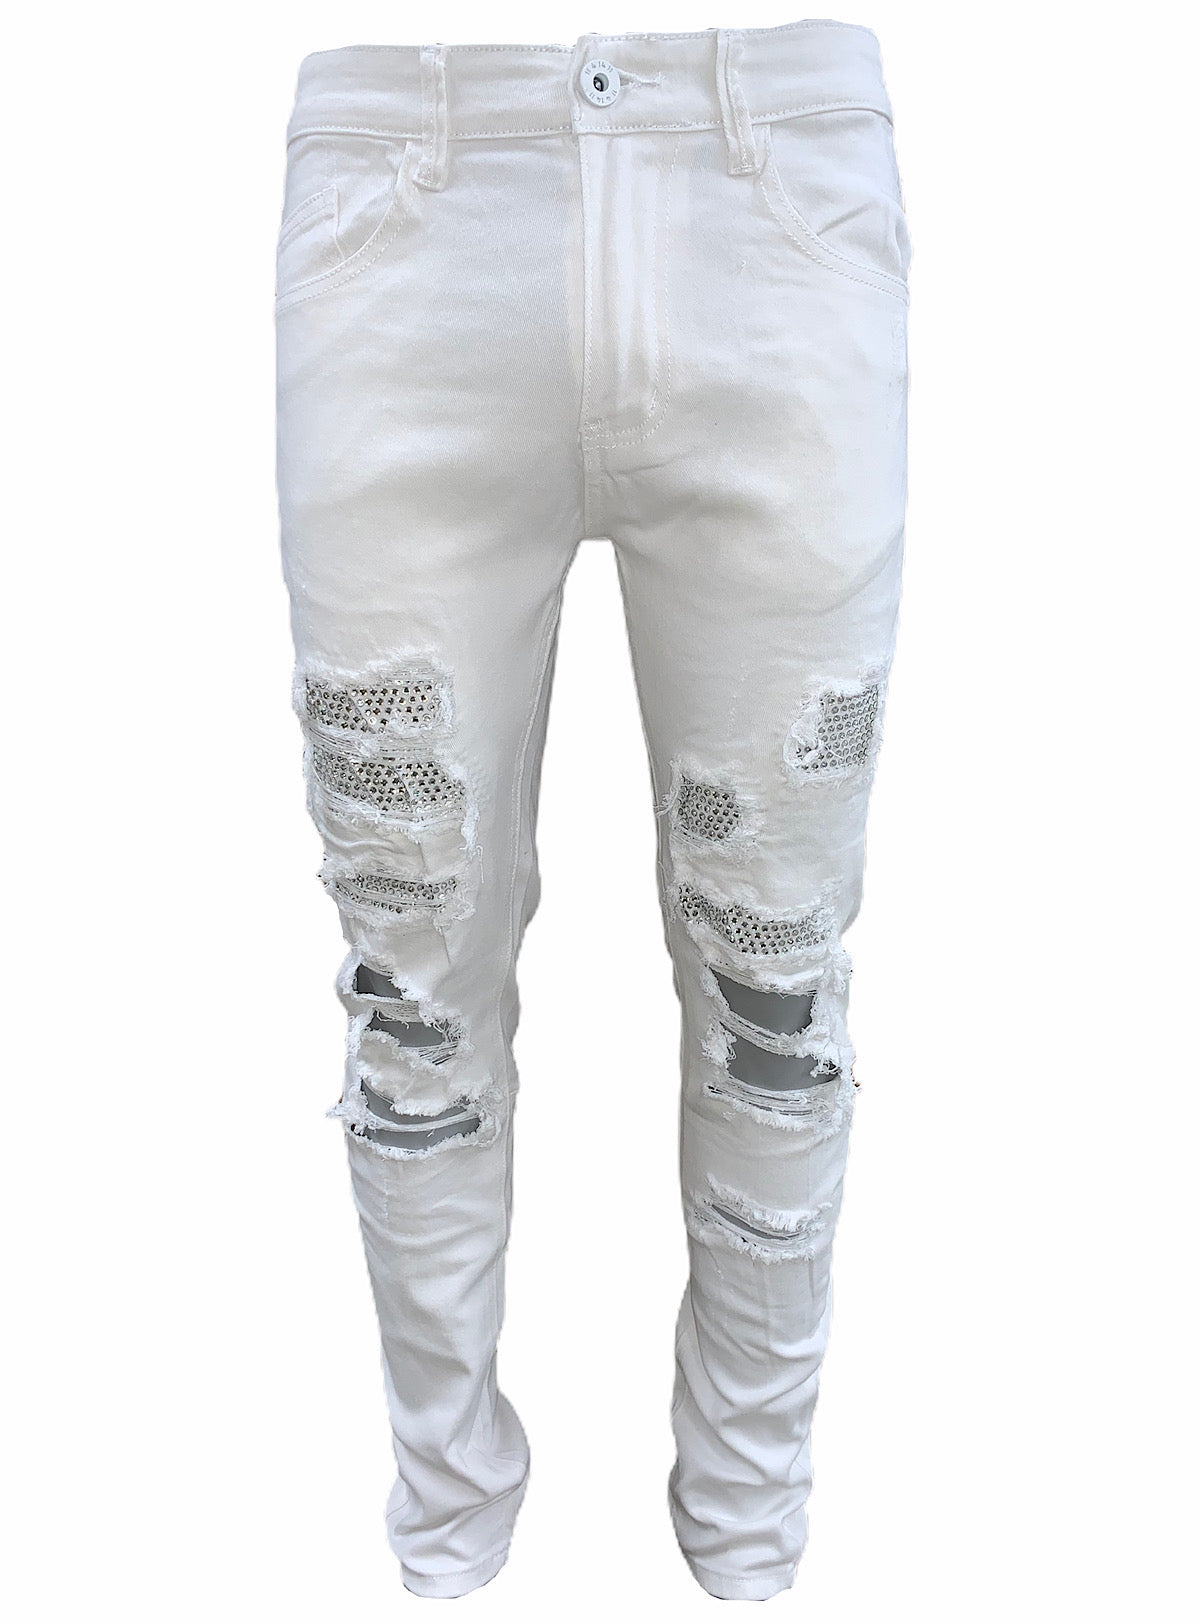 KDNK Jeans - Silver Stones - White - KNB3166